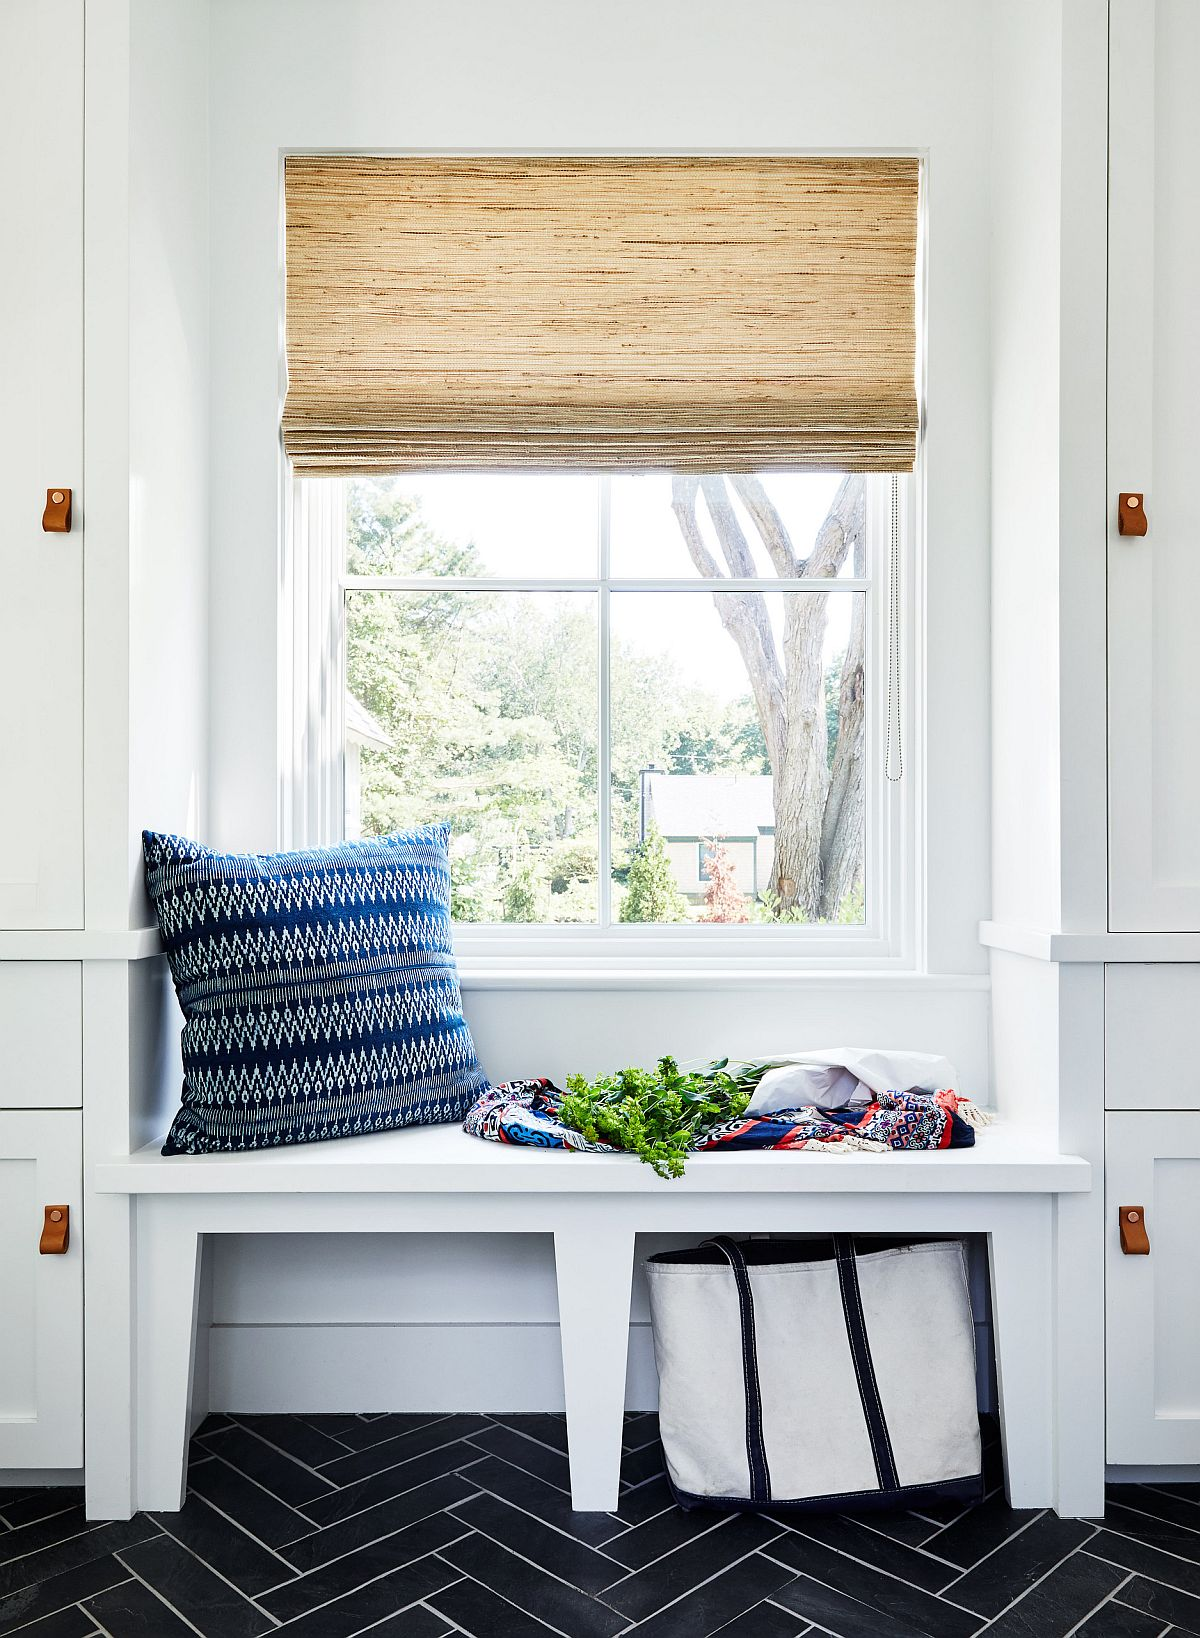 Tiny mudroom and entry with a small window seat and a bright blue throw pillow